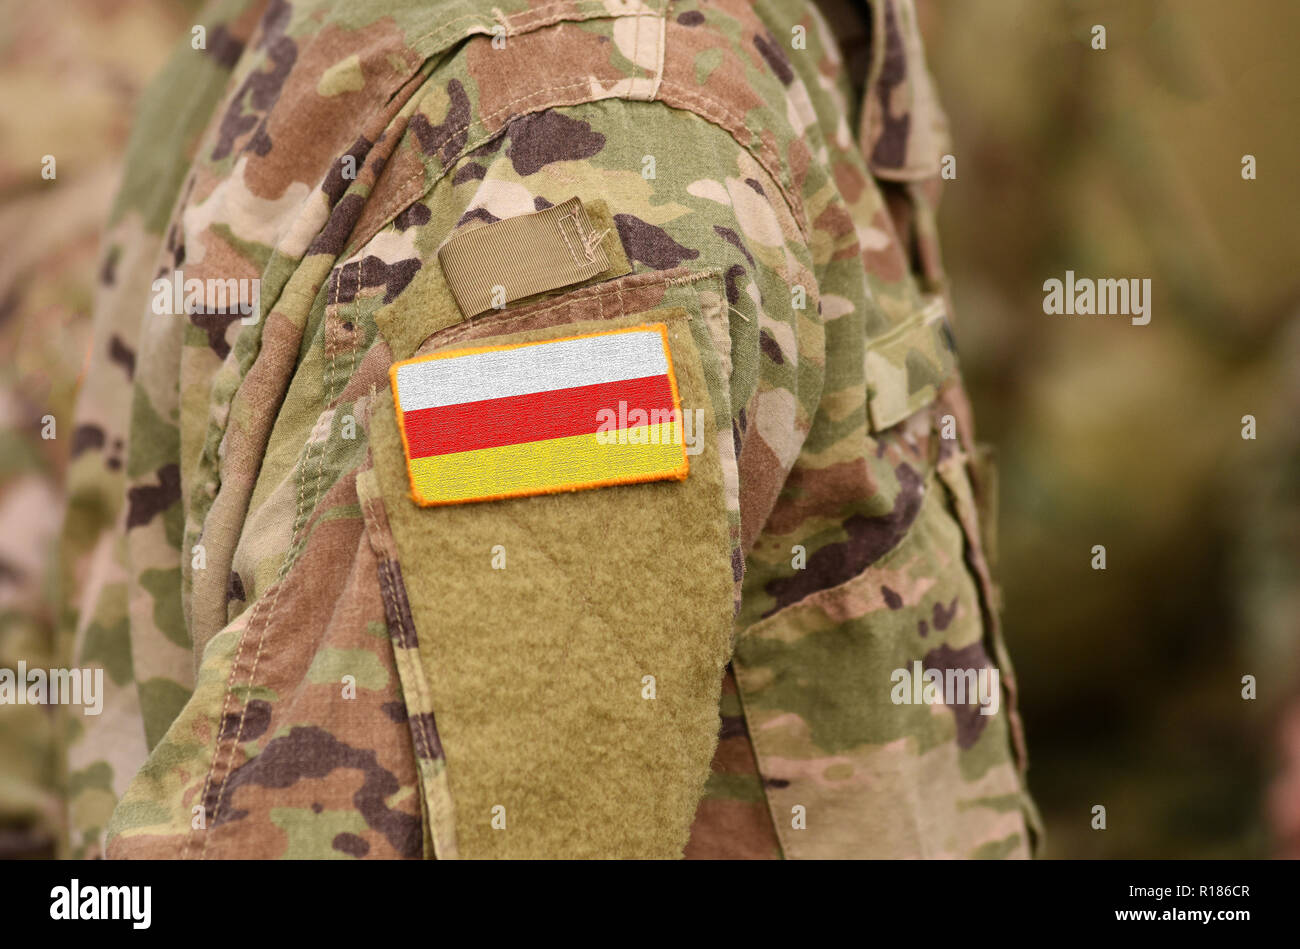 South Ossetia flag on soldiers arm. South Ossetia troops (collage) - Stock Image